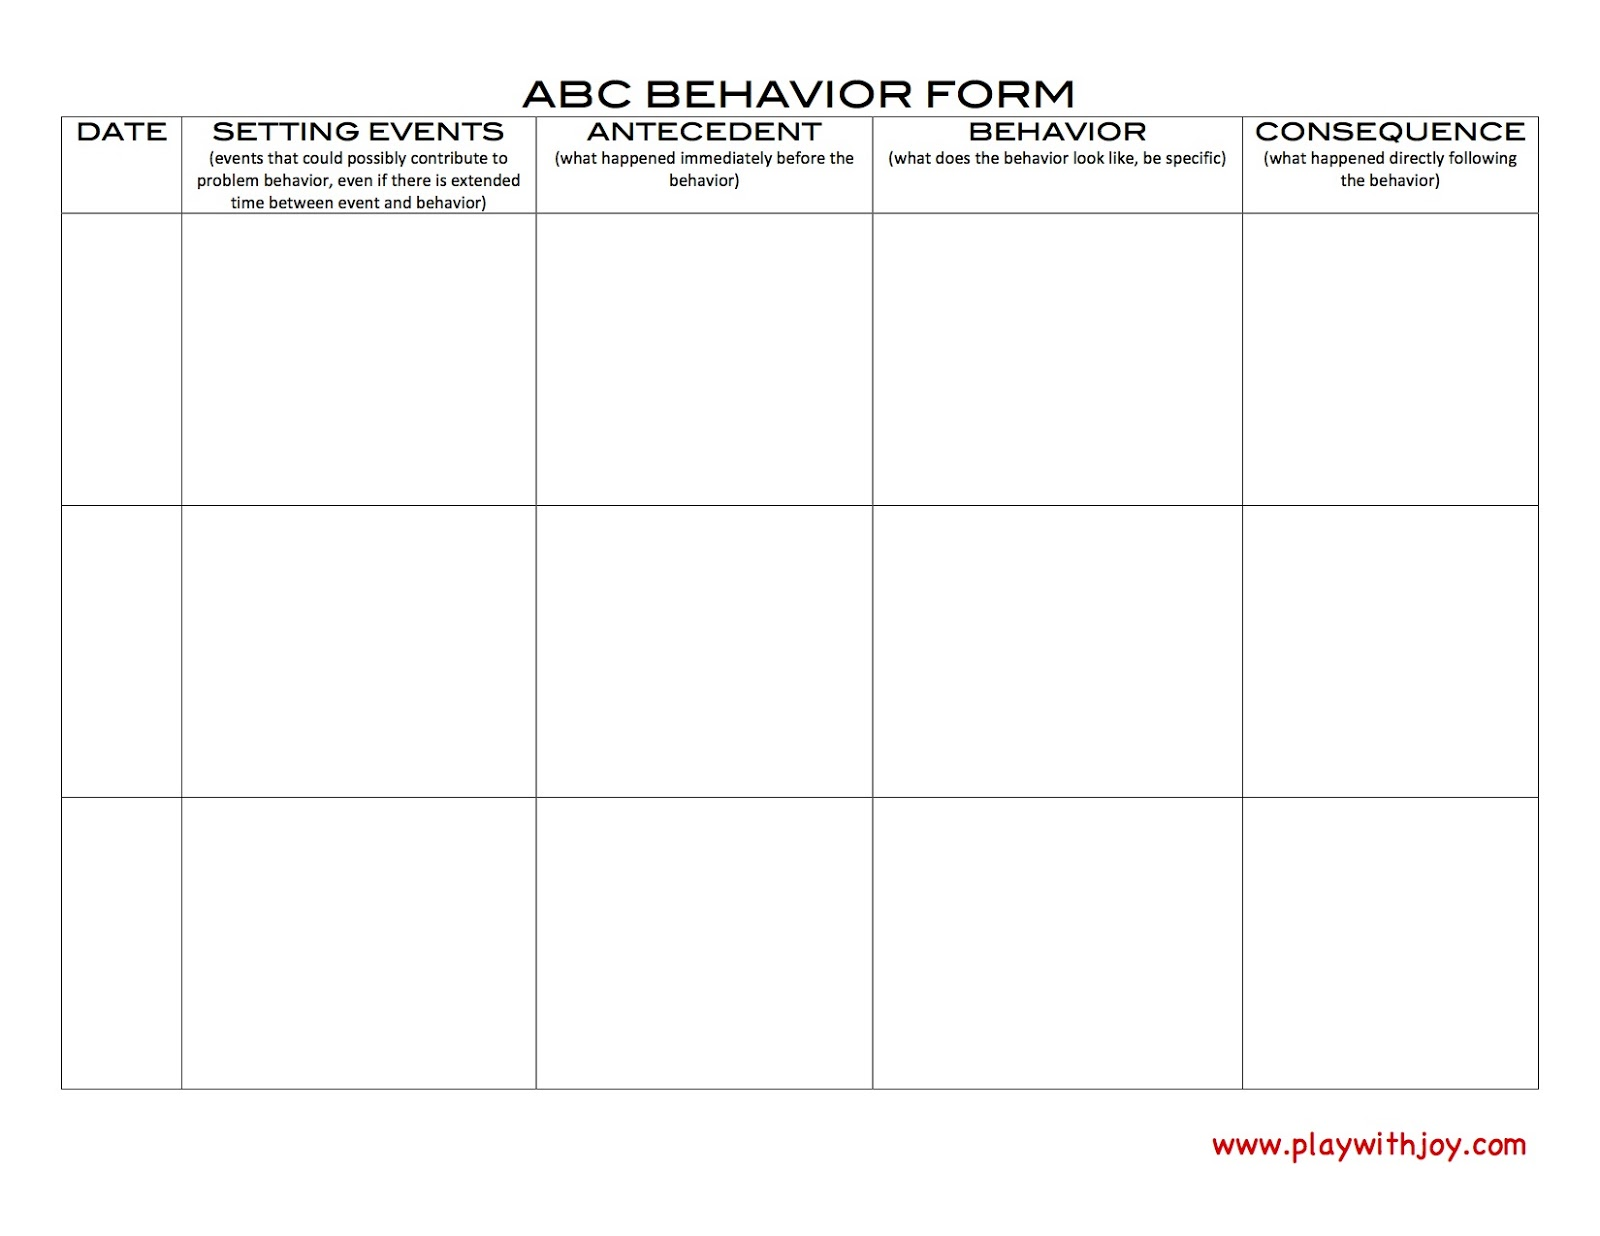 Play with joy llc june 2013 for Abc chart behaviour template